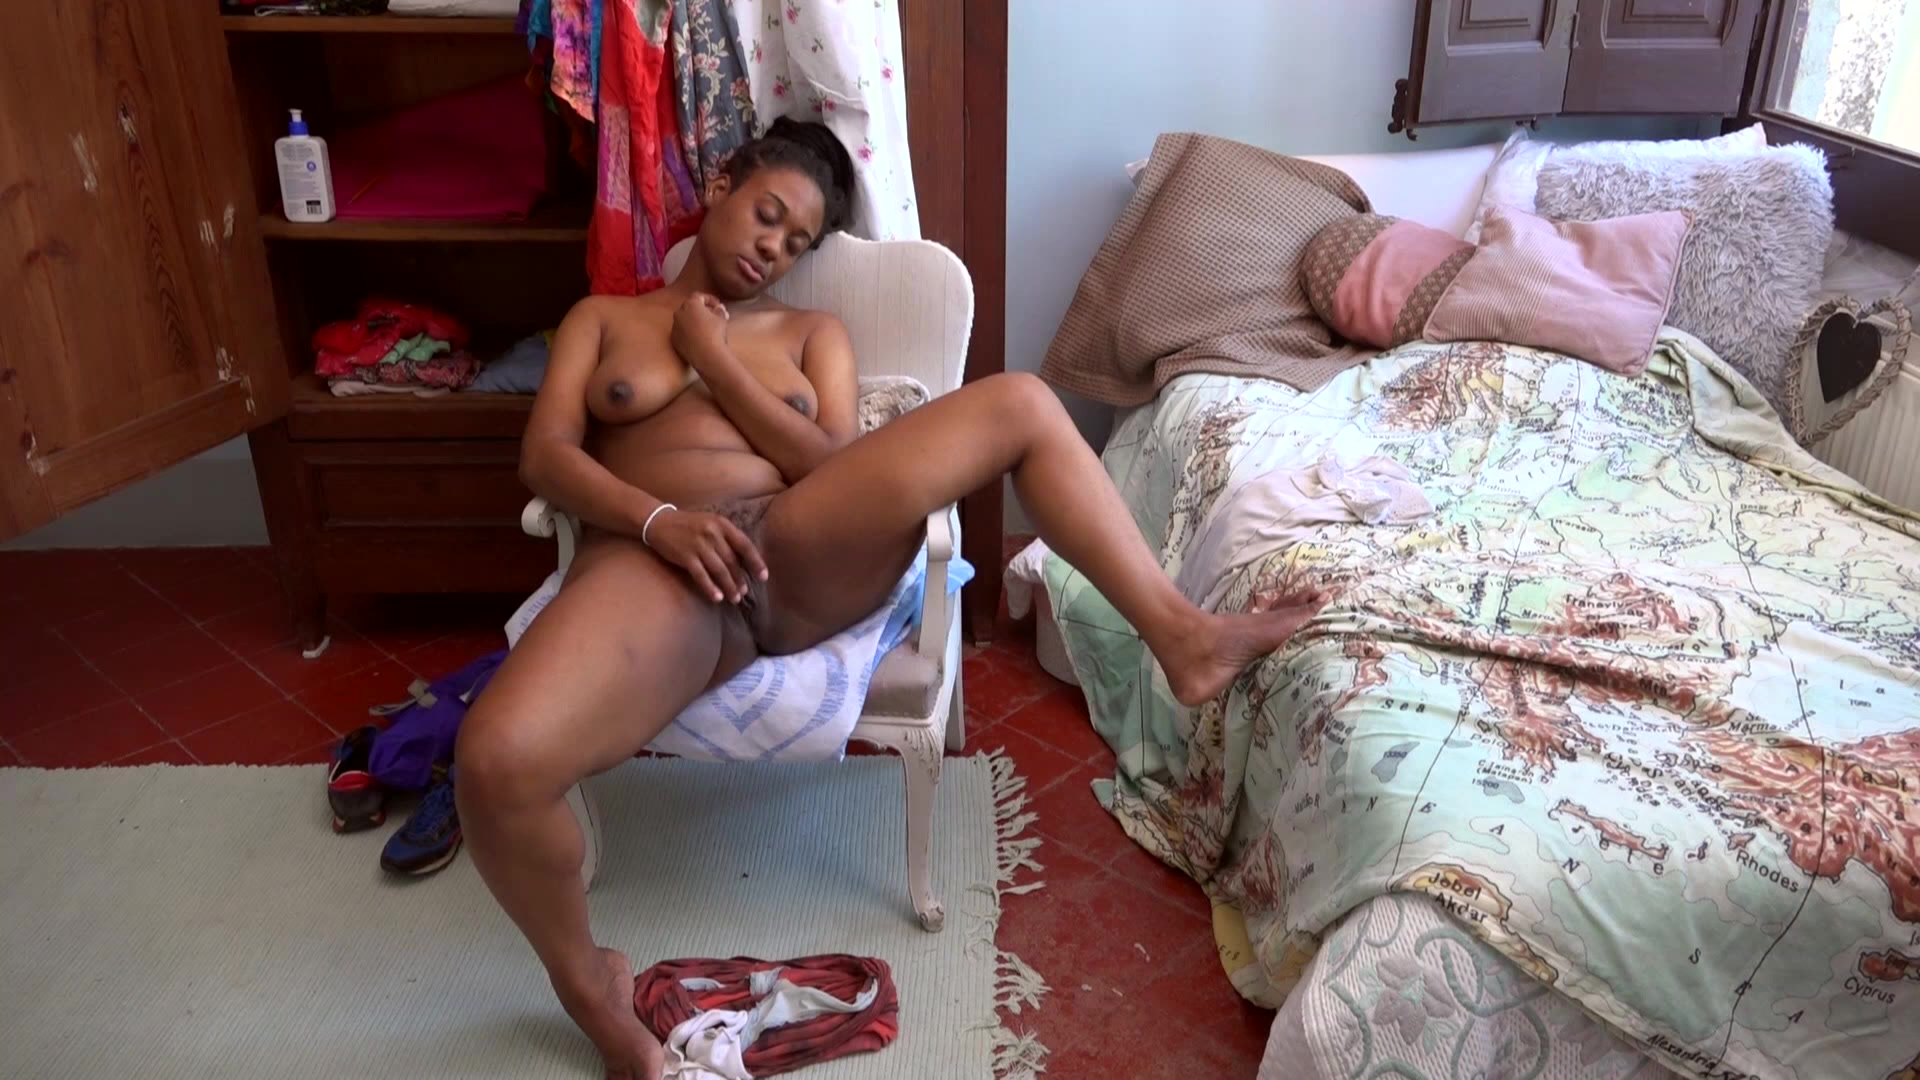 Abby Winters - PRIVATE MOMENTS 124